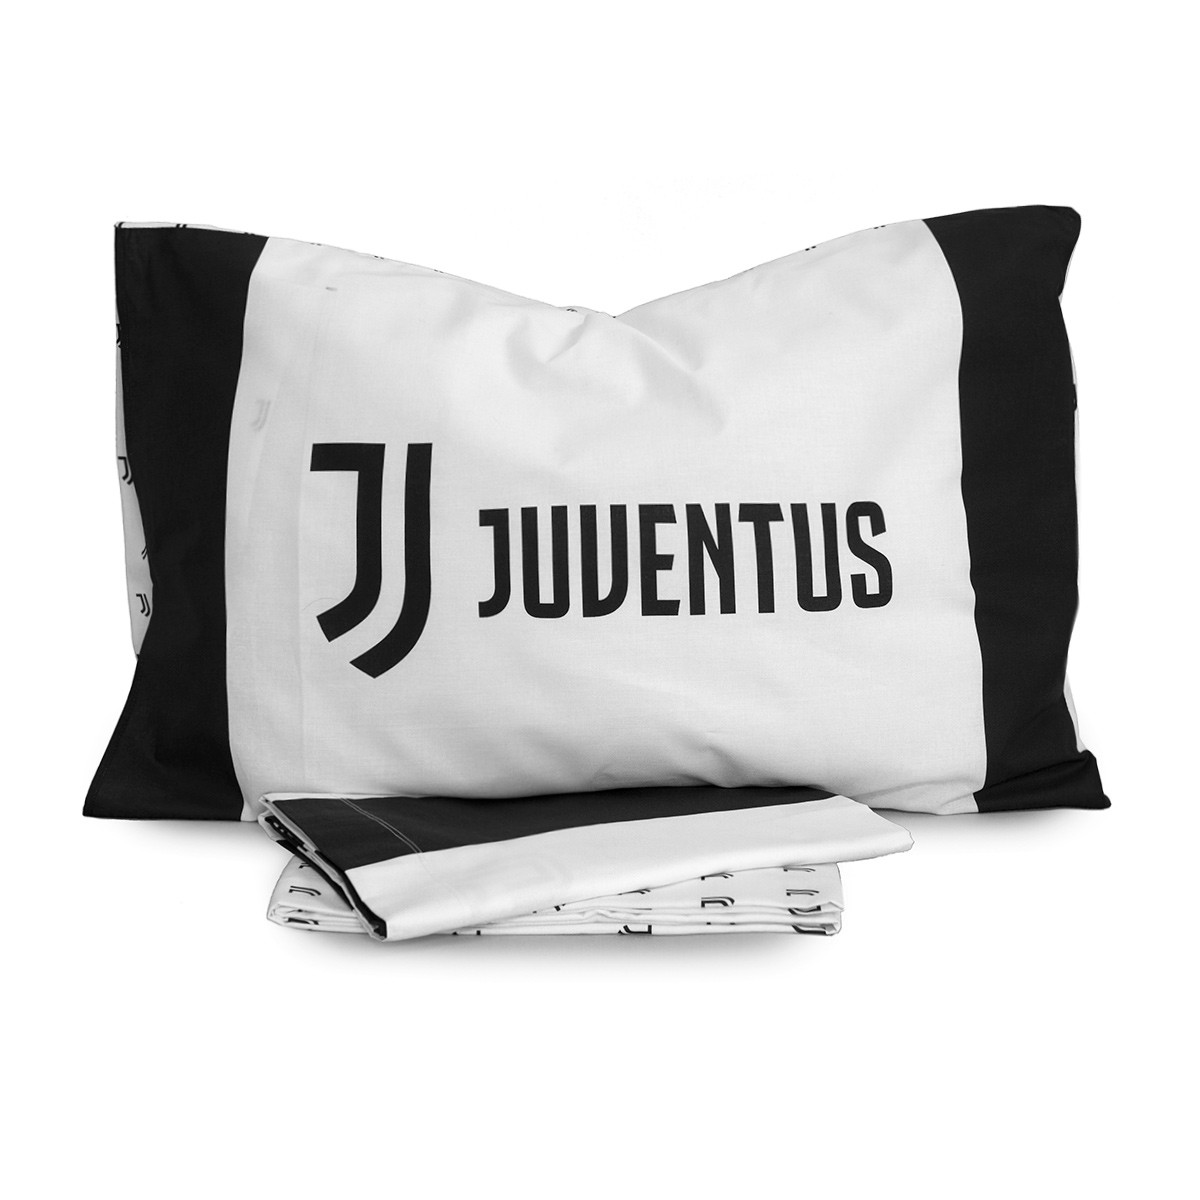 Completo lenzuola JUVENTUS F.C. ufficiale